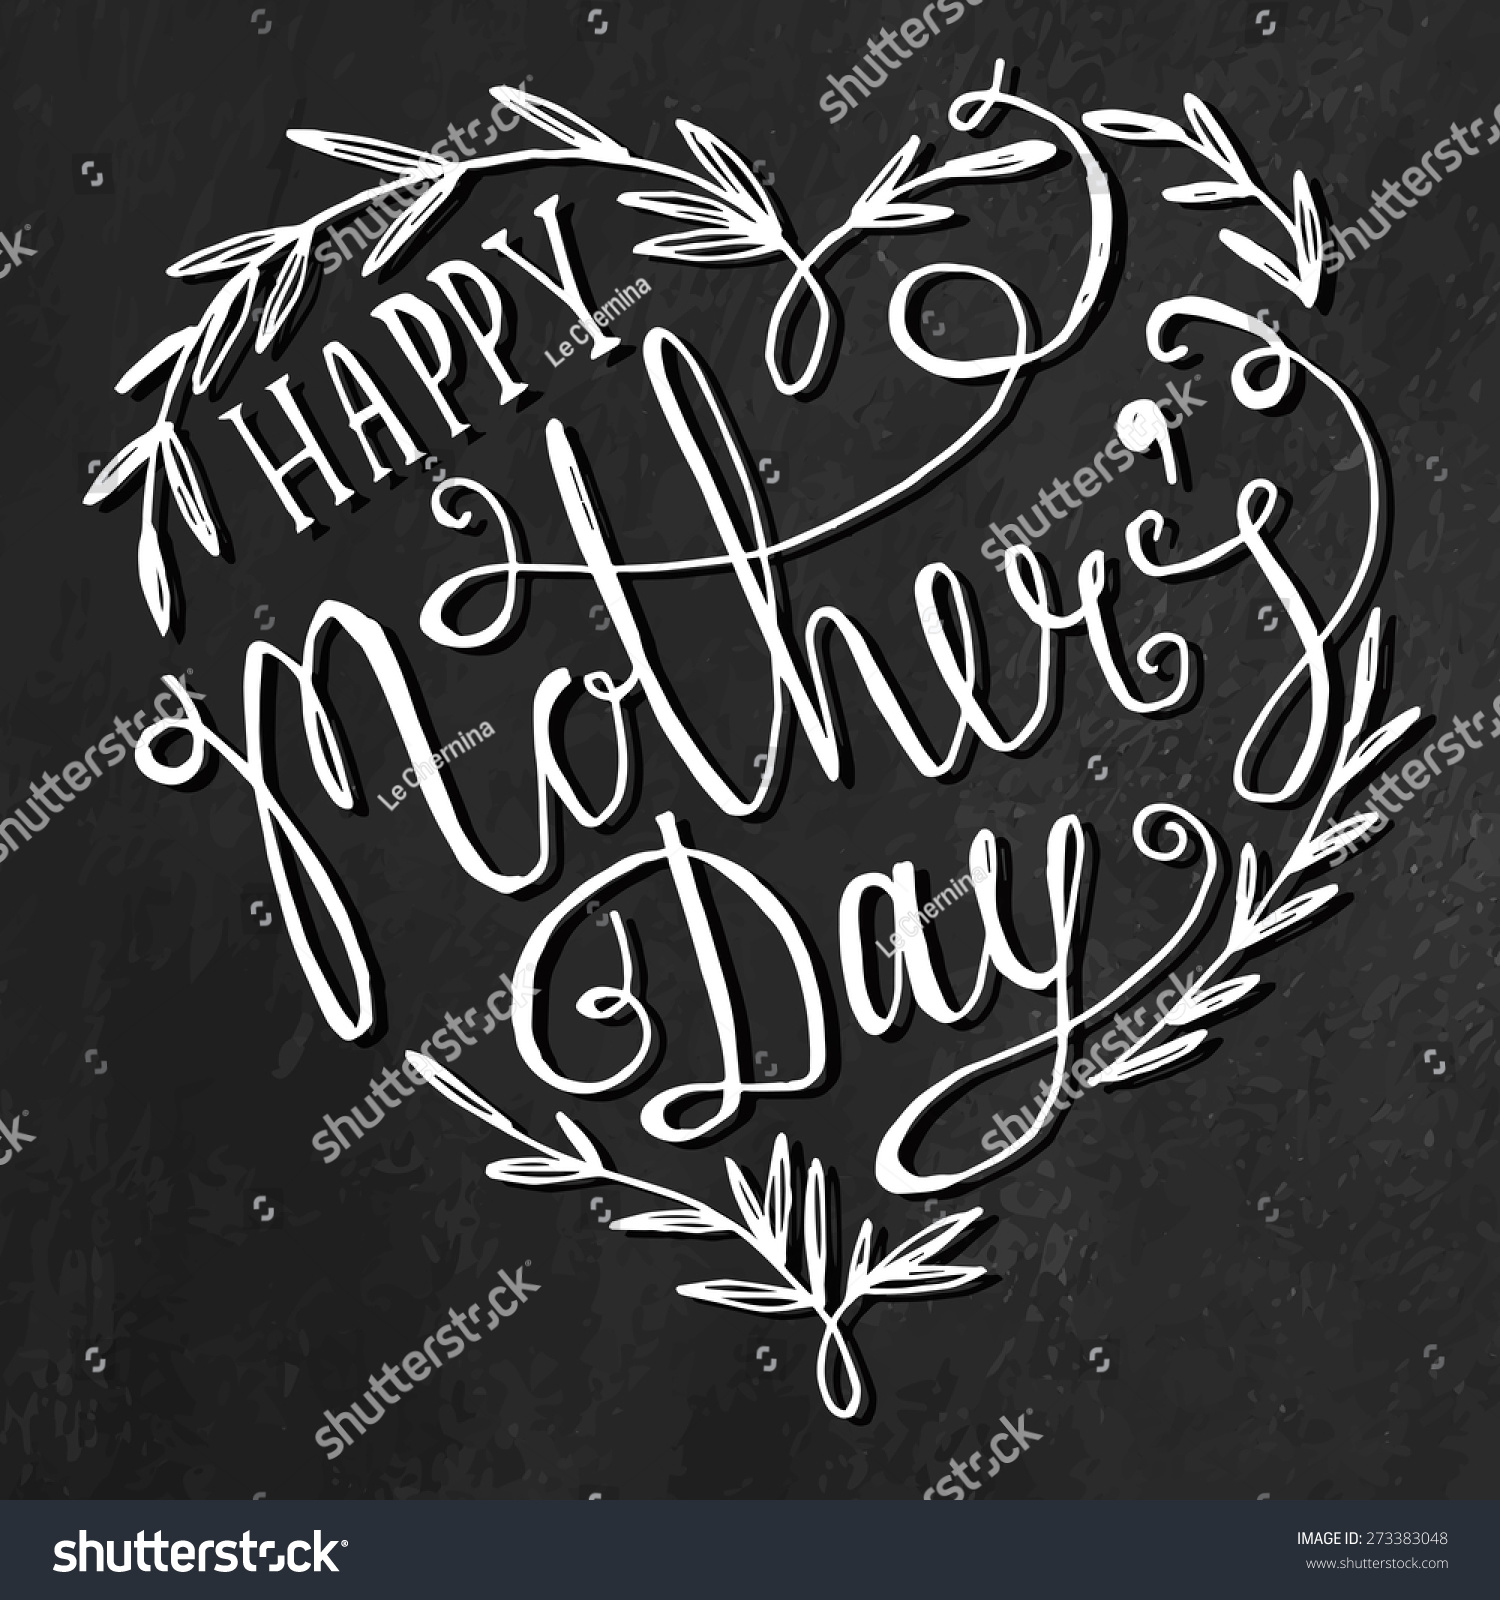 Happy Mothers Day Chalkboard Greeting Calligraphy Stock